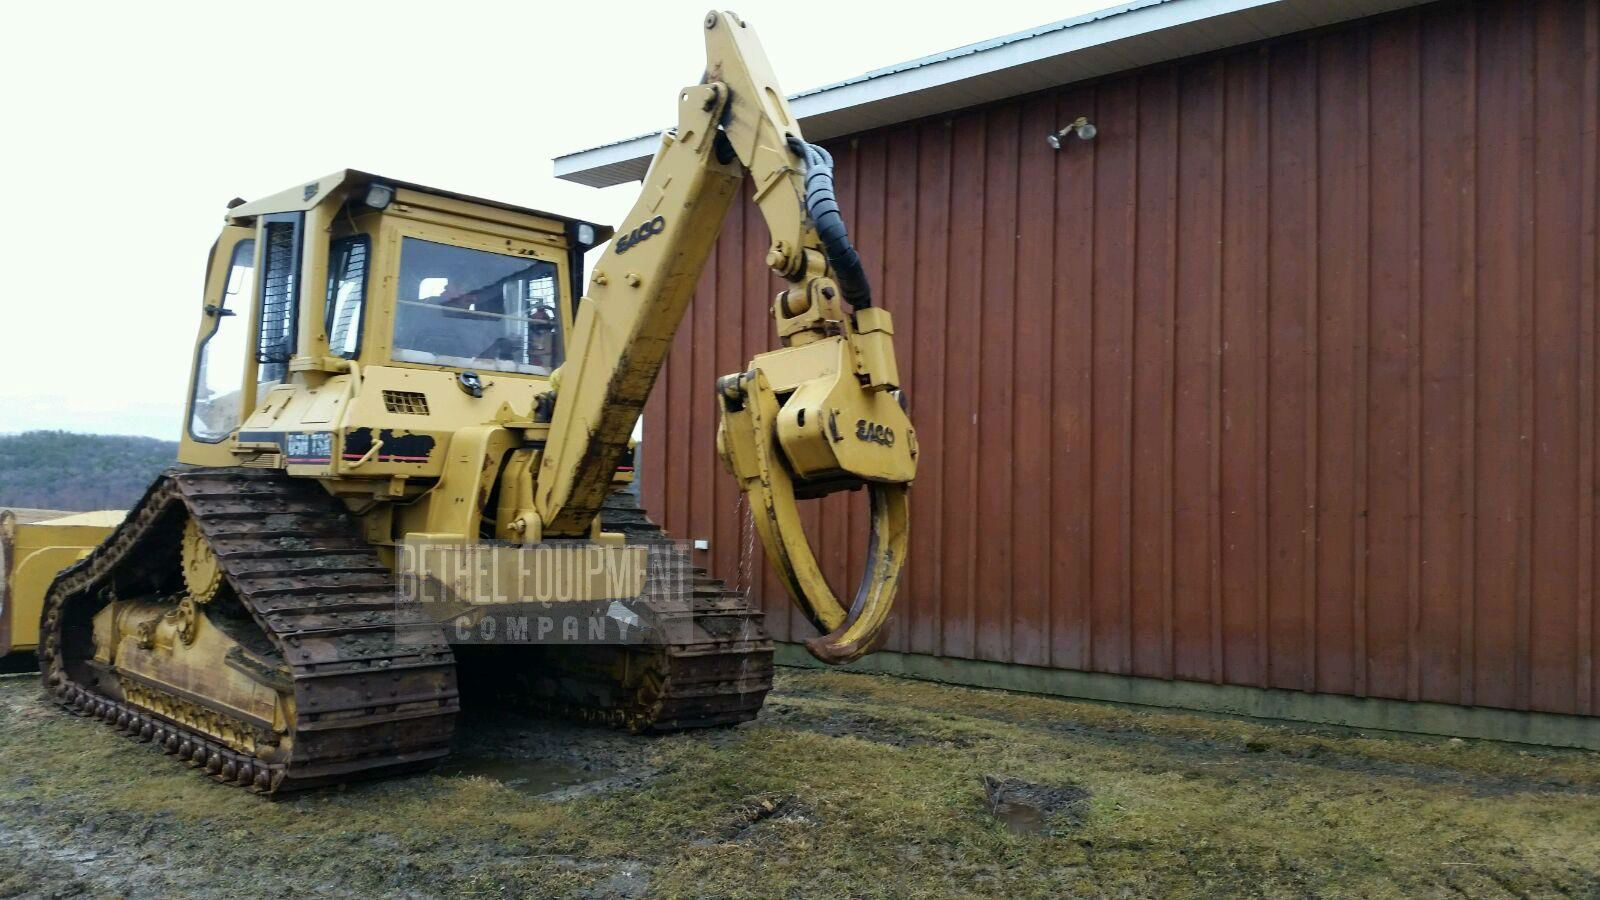 1996 Caterpillar D5H Dozer with Esco Grapple, Hours Unknown